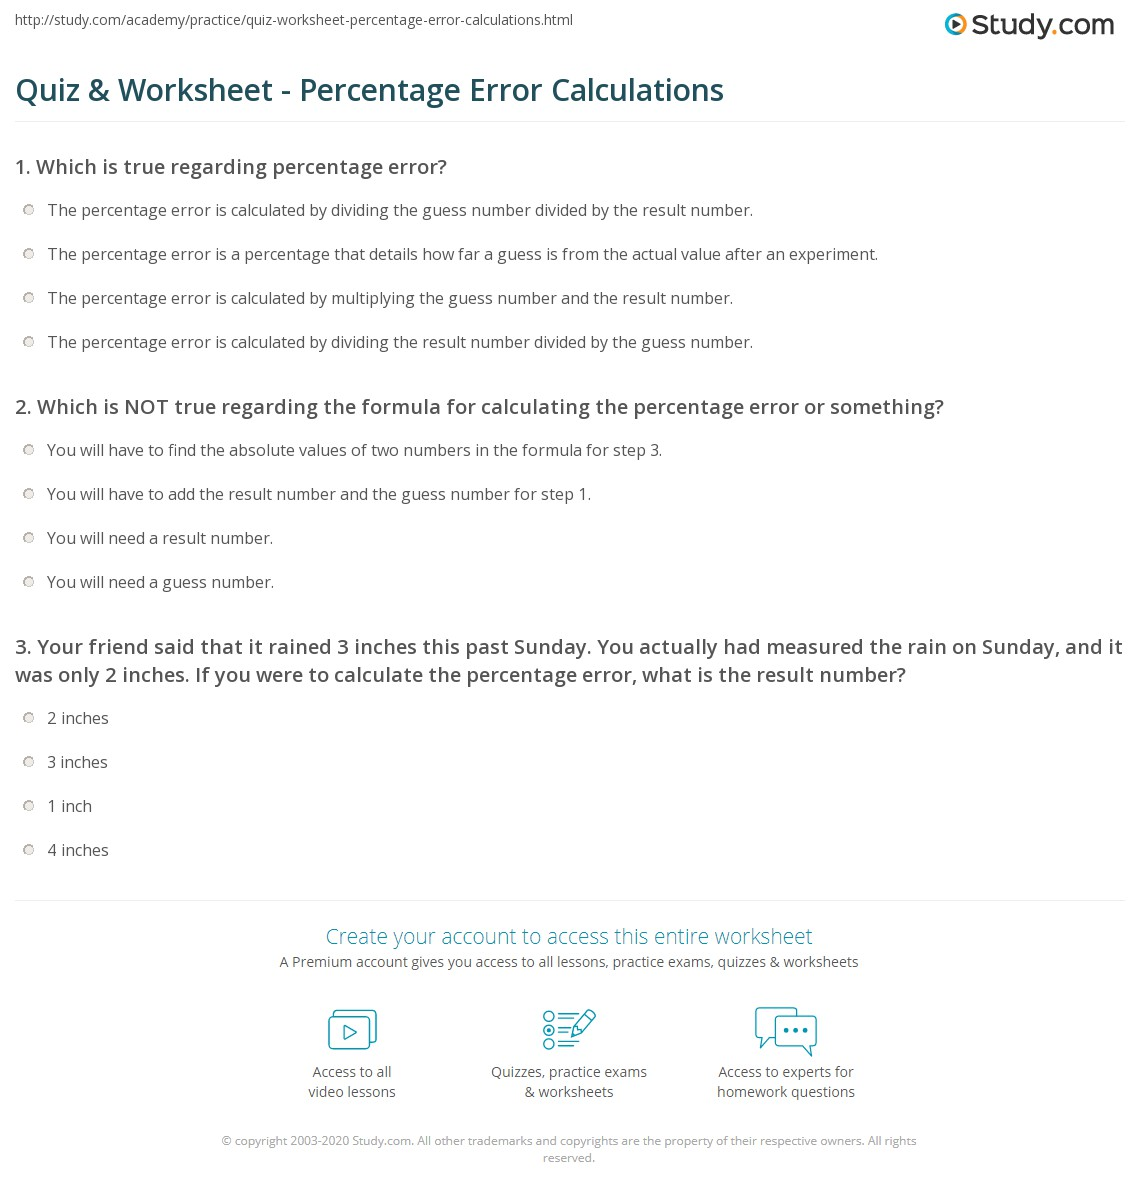 quiz worksheet percentage error calculations. Black Bedroom Furniture Sets. Home Design Ideas